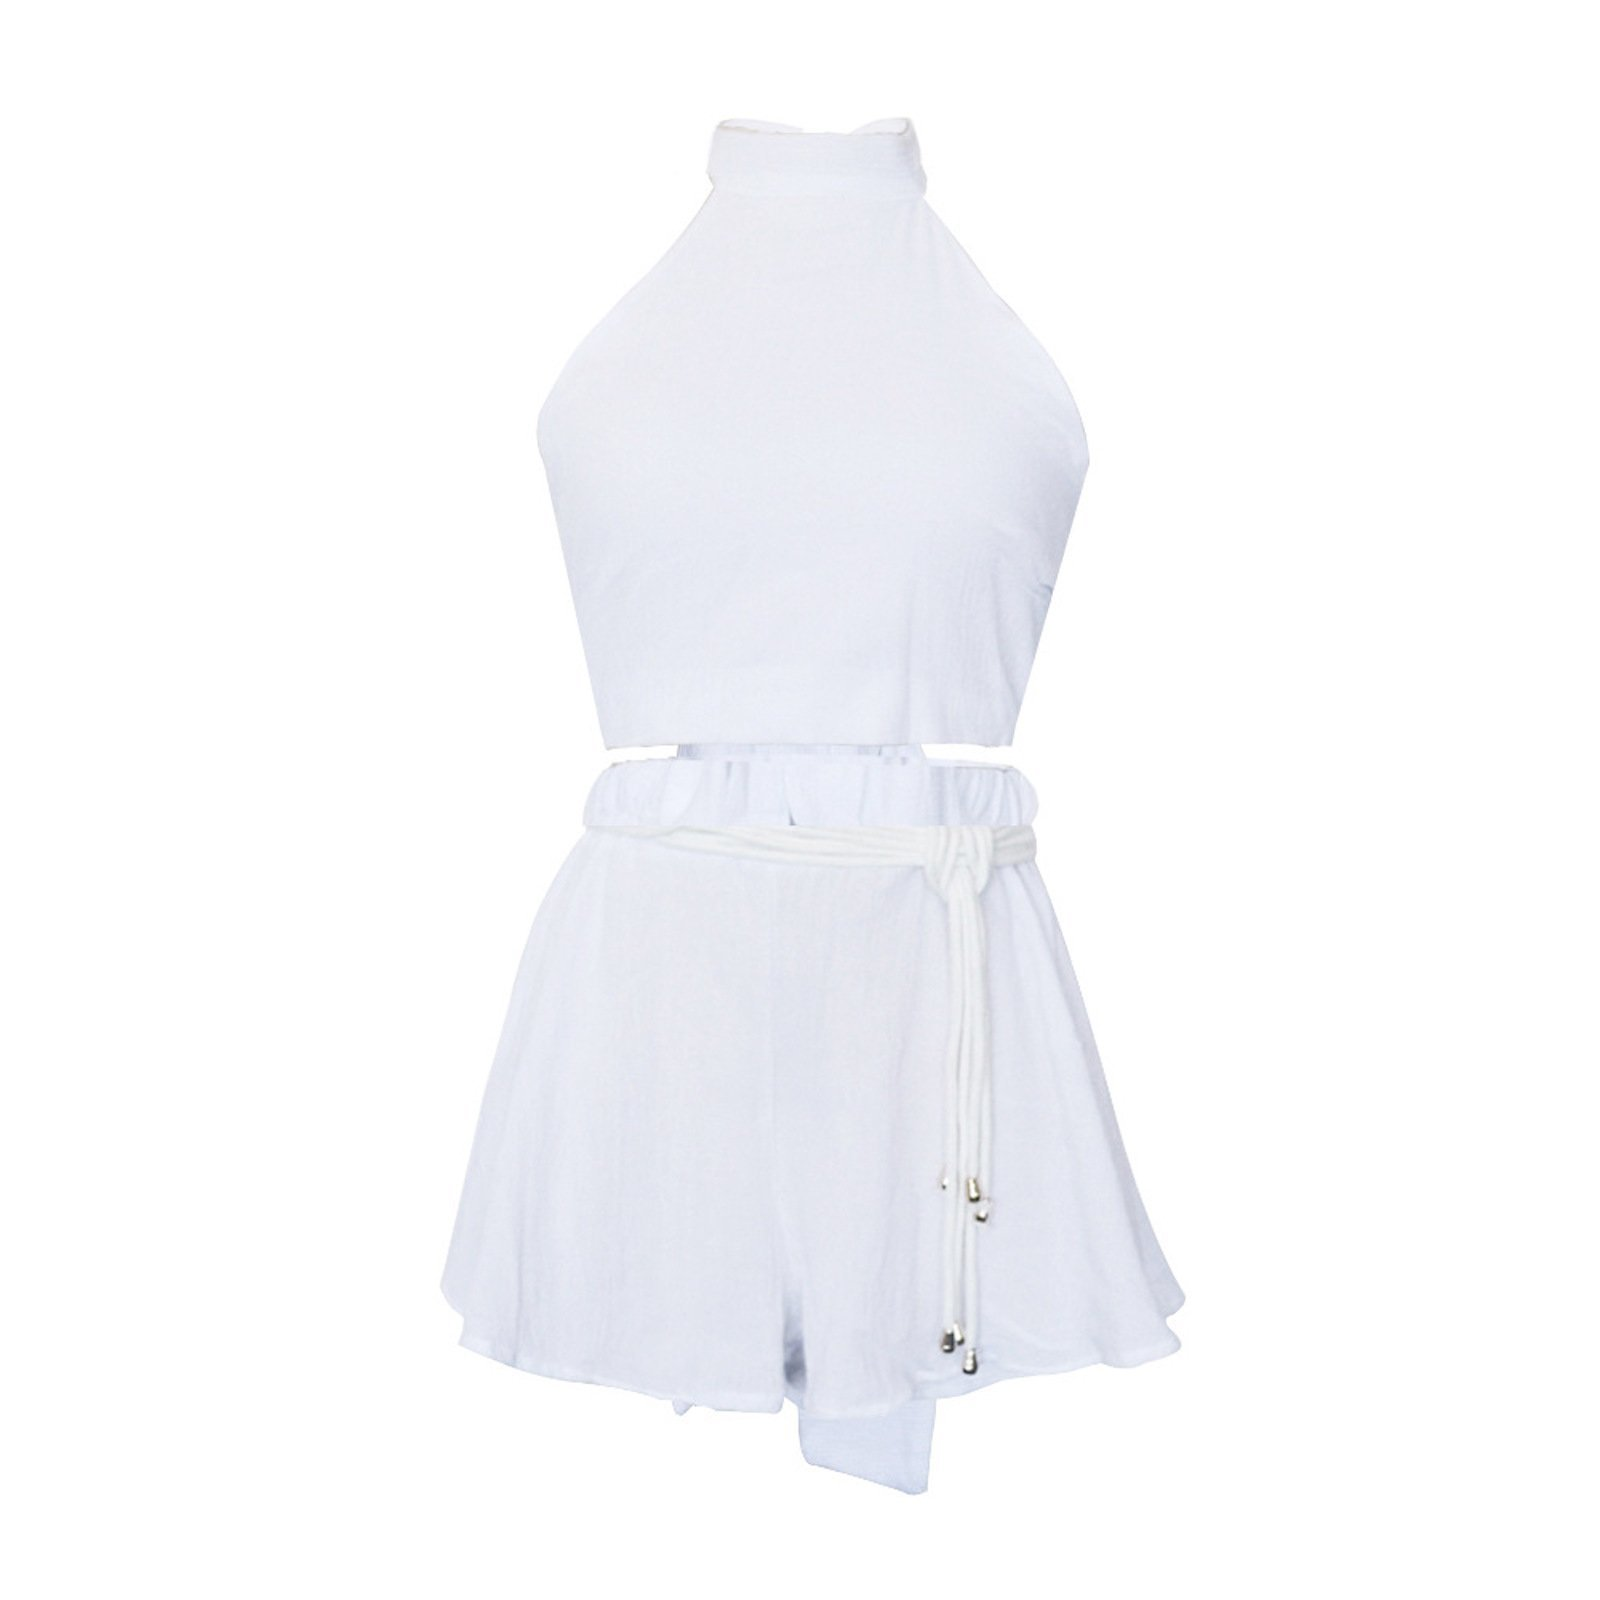 WSLCN Playsuits Backless Collar Halter Jumpsuit Casual Shorts Holiday Dress Beachwear White X-Large